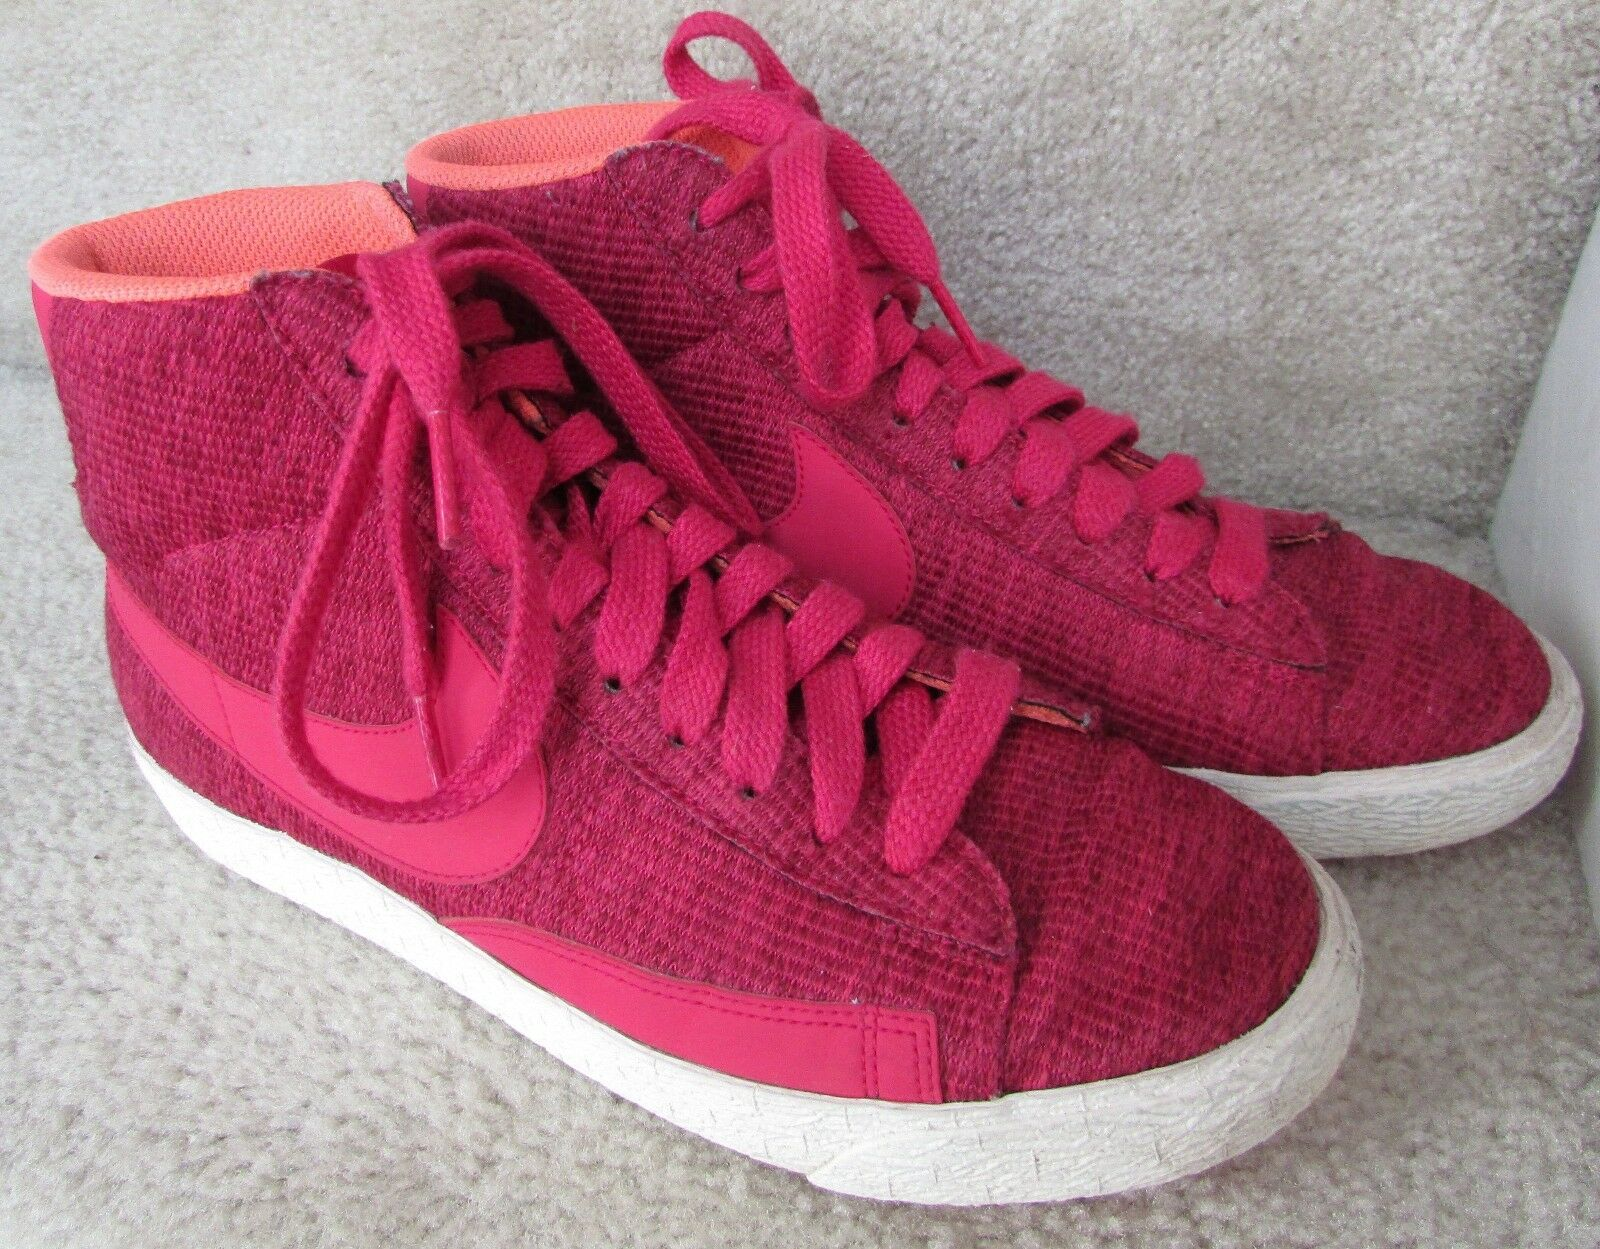 Nike Womens Blazer Mid Garnet Fuscia Sample Sneakers Shoes Size 7